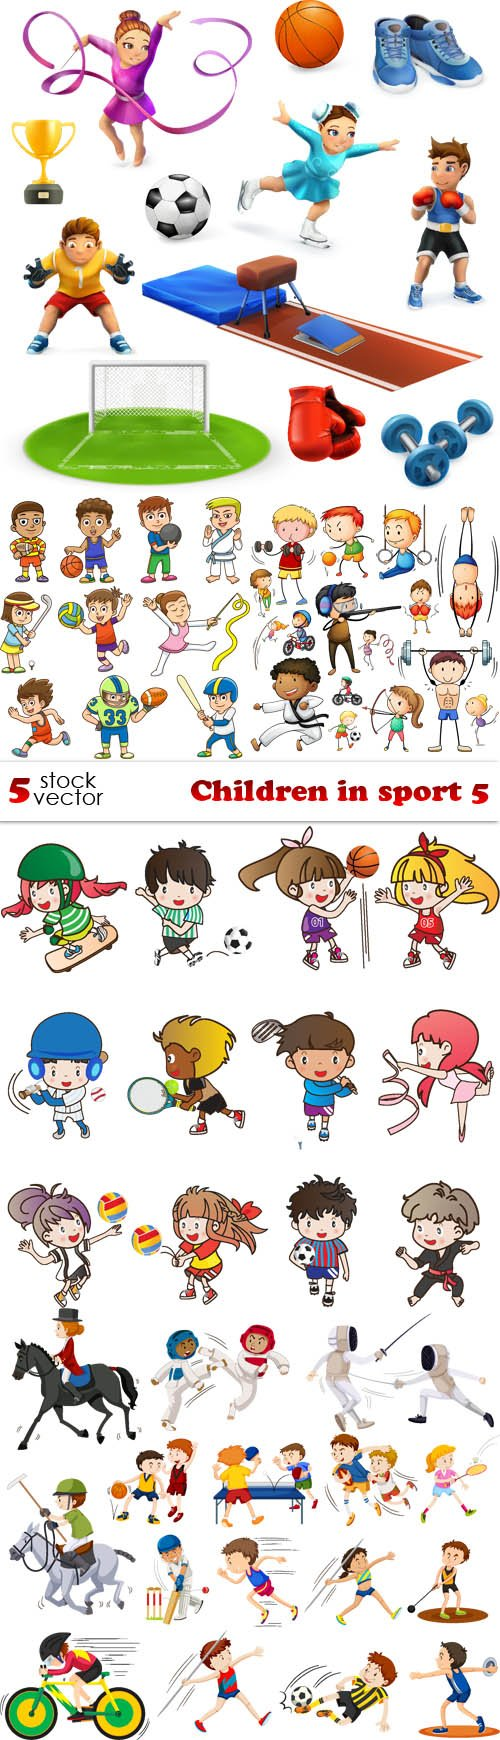 Vectors - Children in sport 5